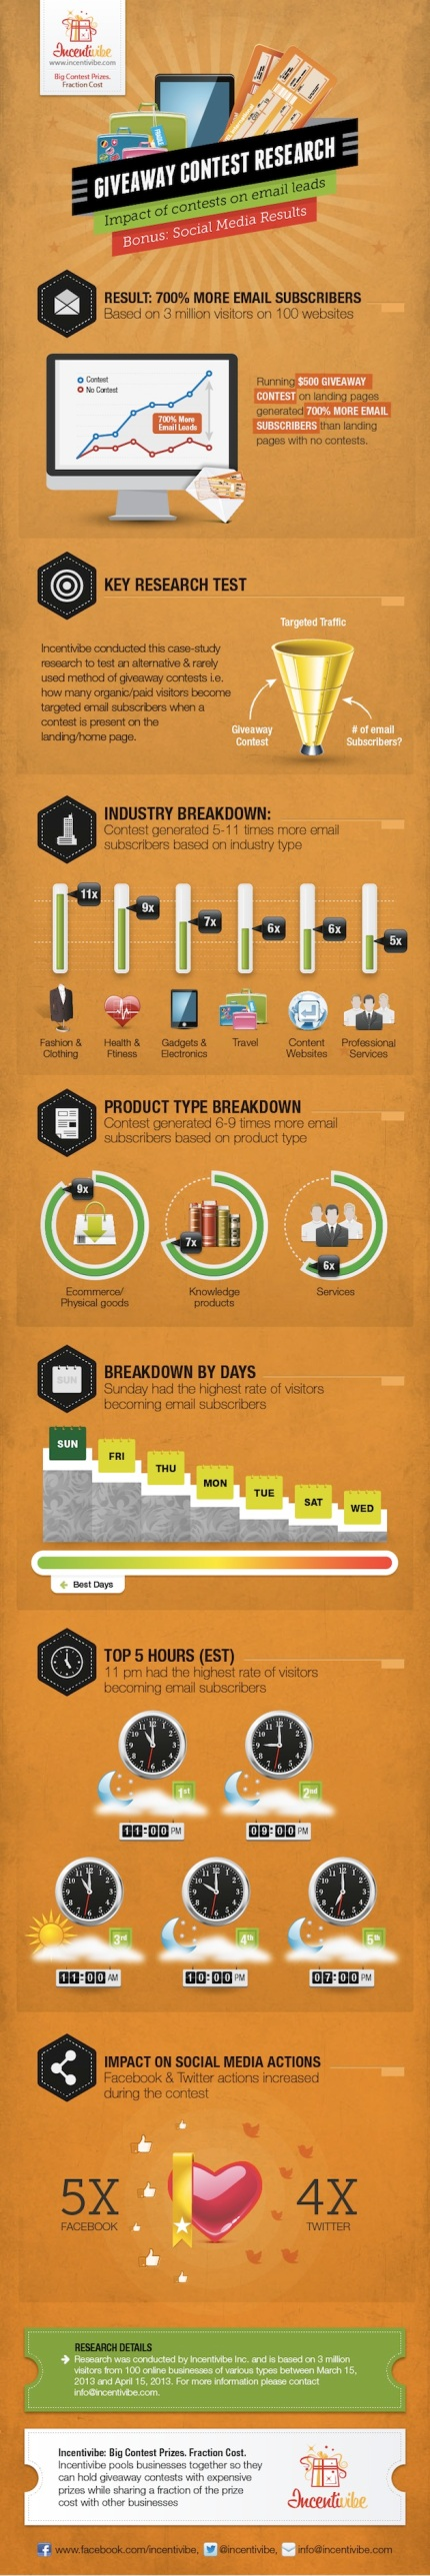 contest-email-infographic-2-incentivibe-2013